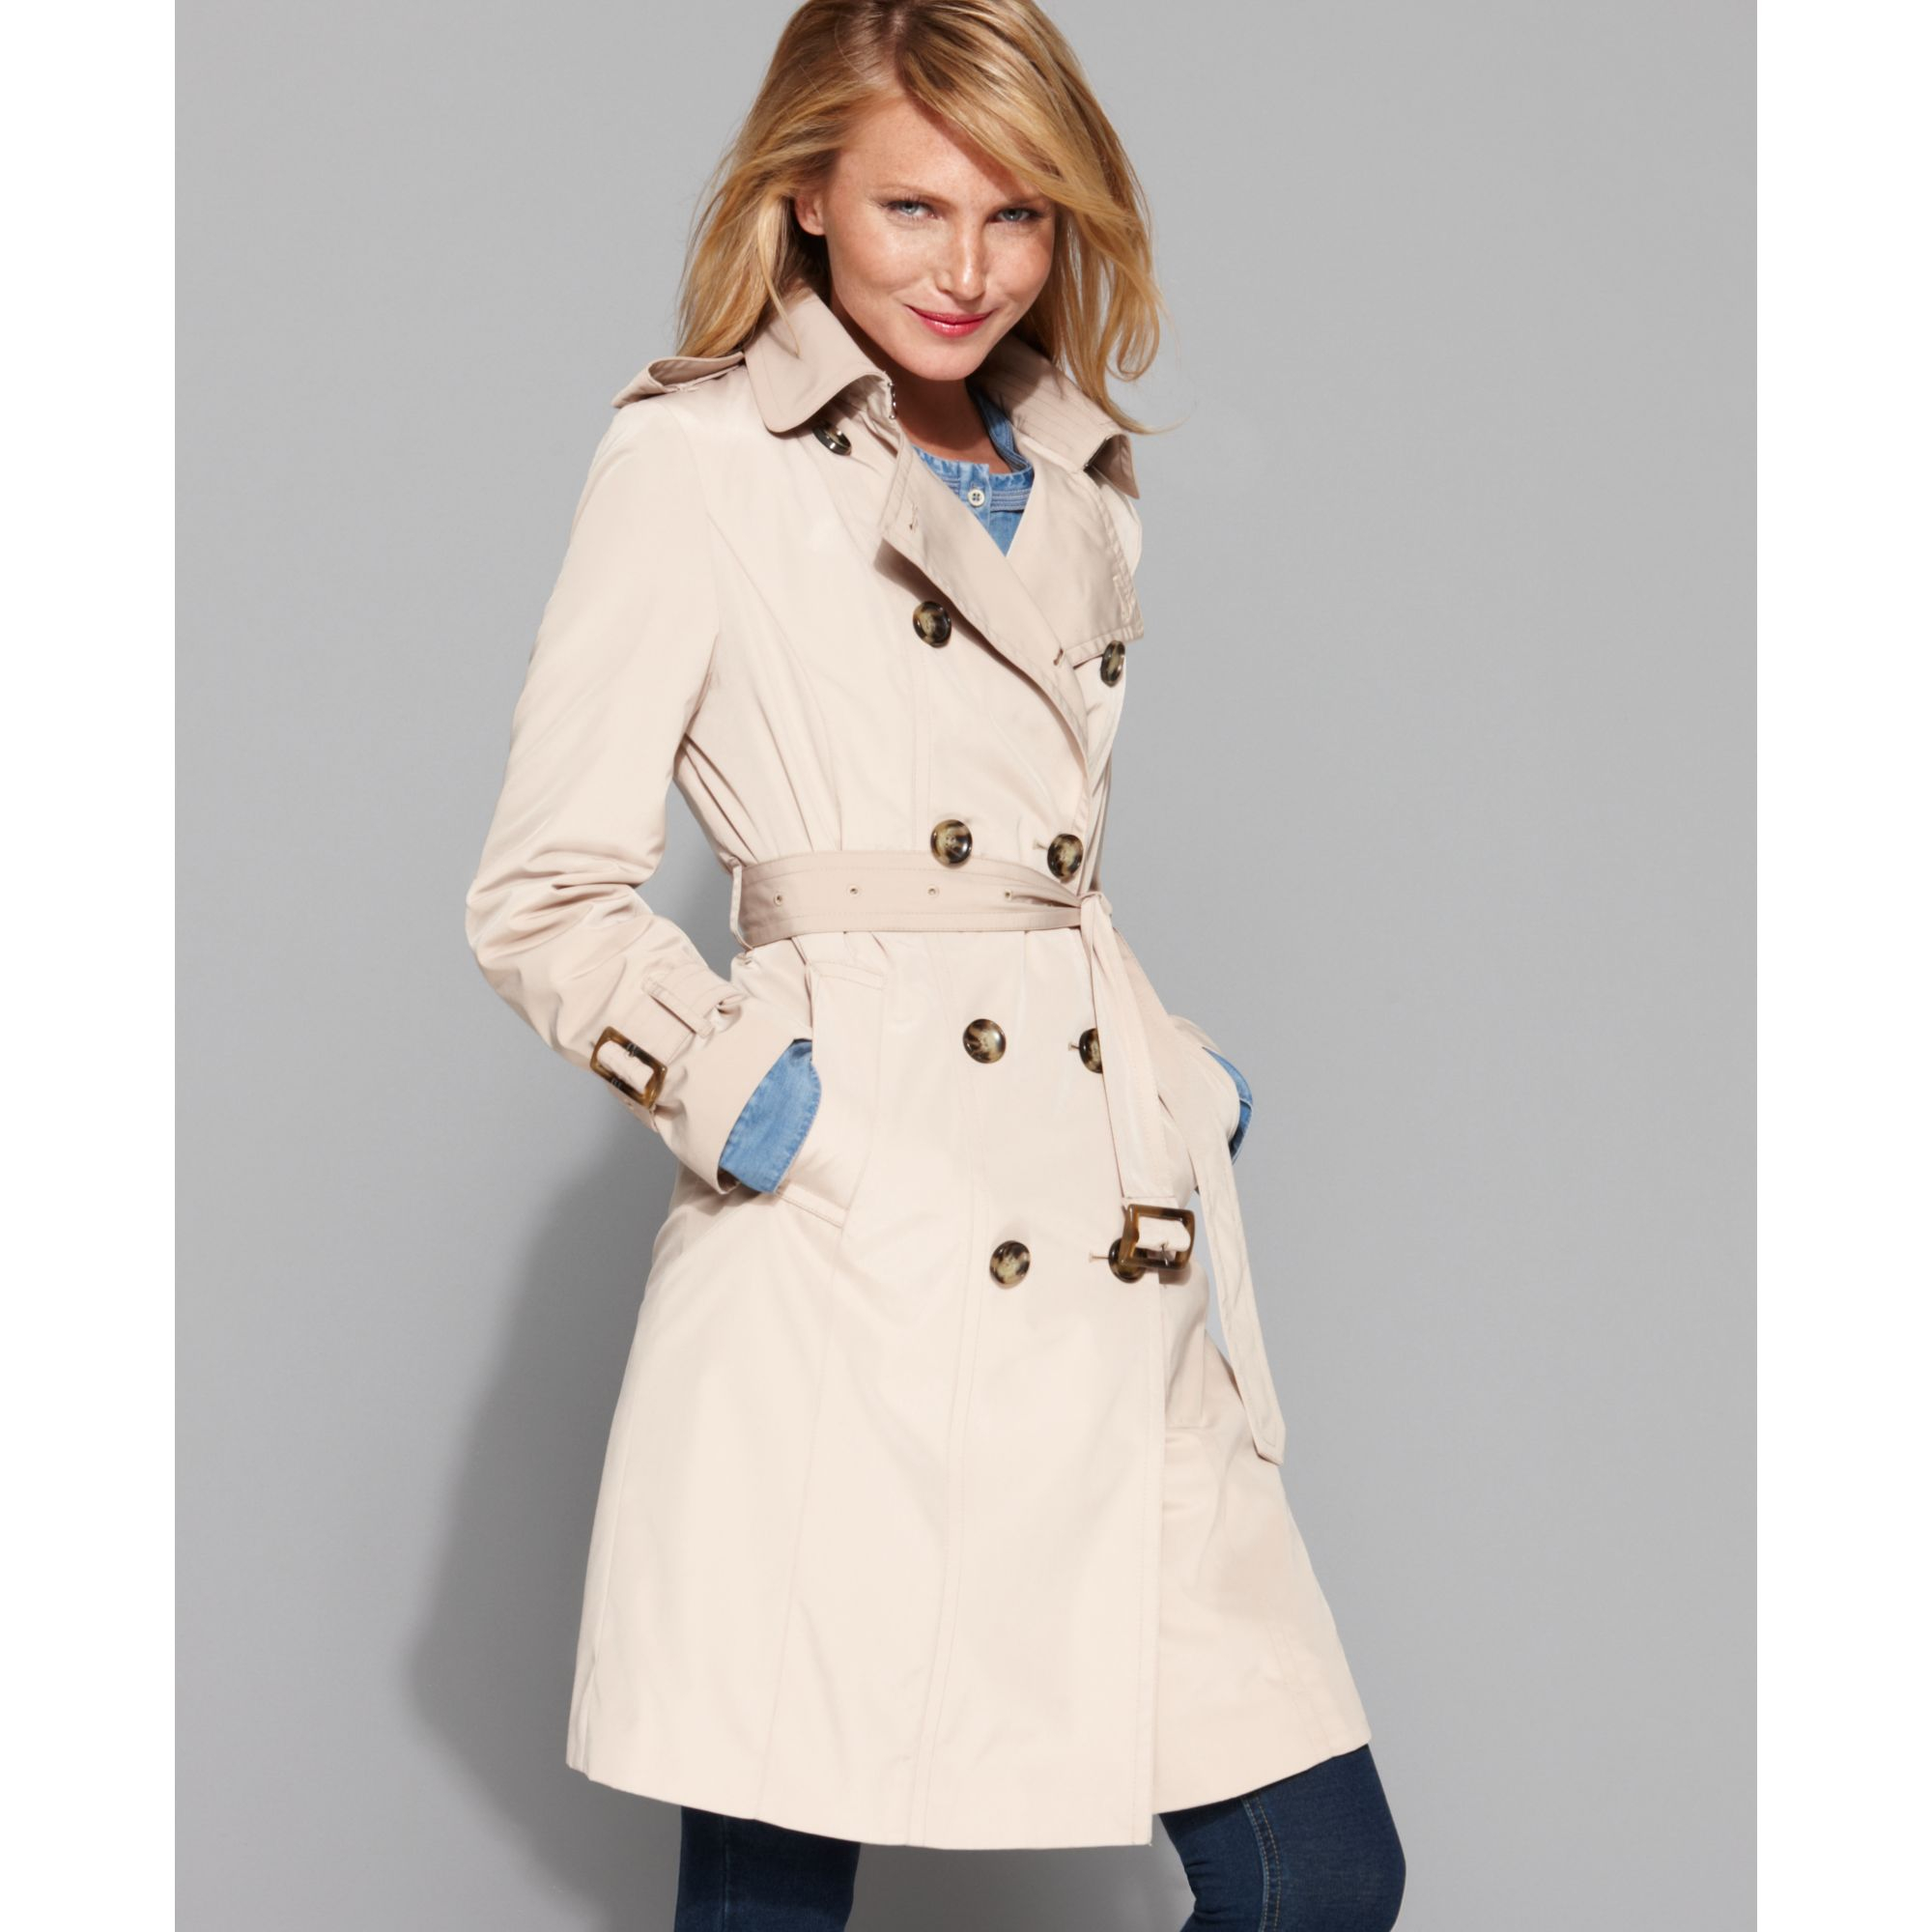 33eb74f49cd Lyst - London Fog Double Breasted Belted Trench Coat in Natural